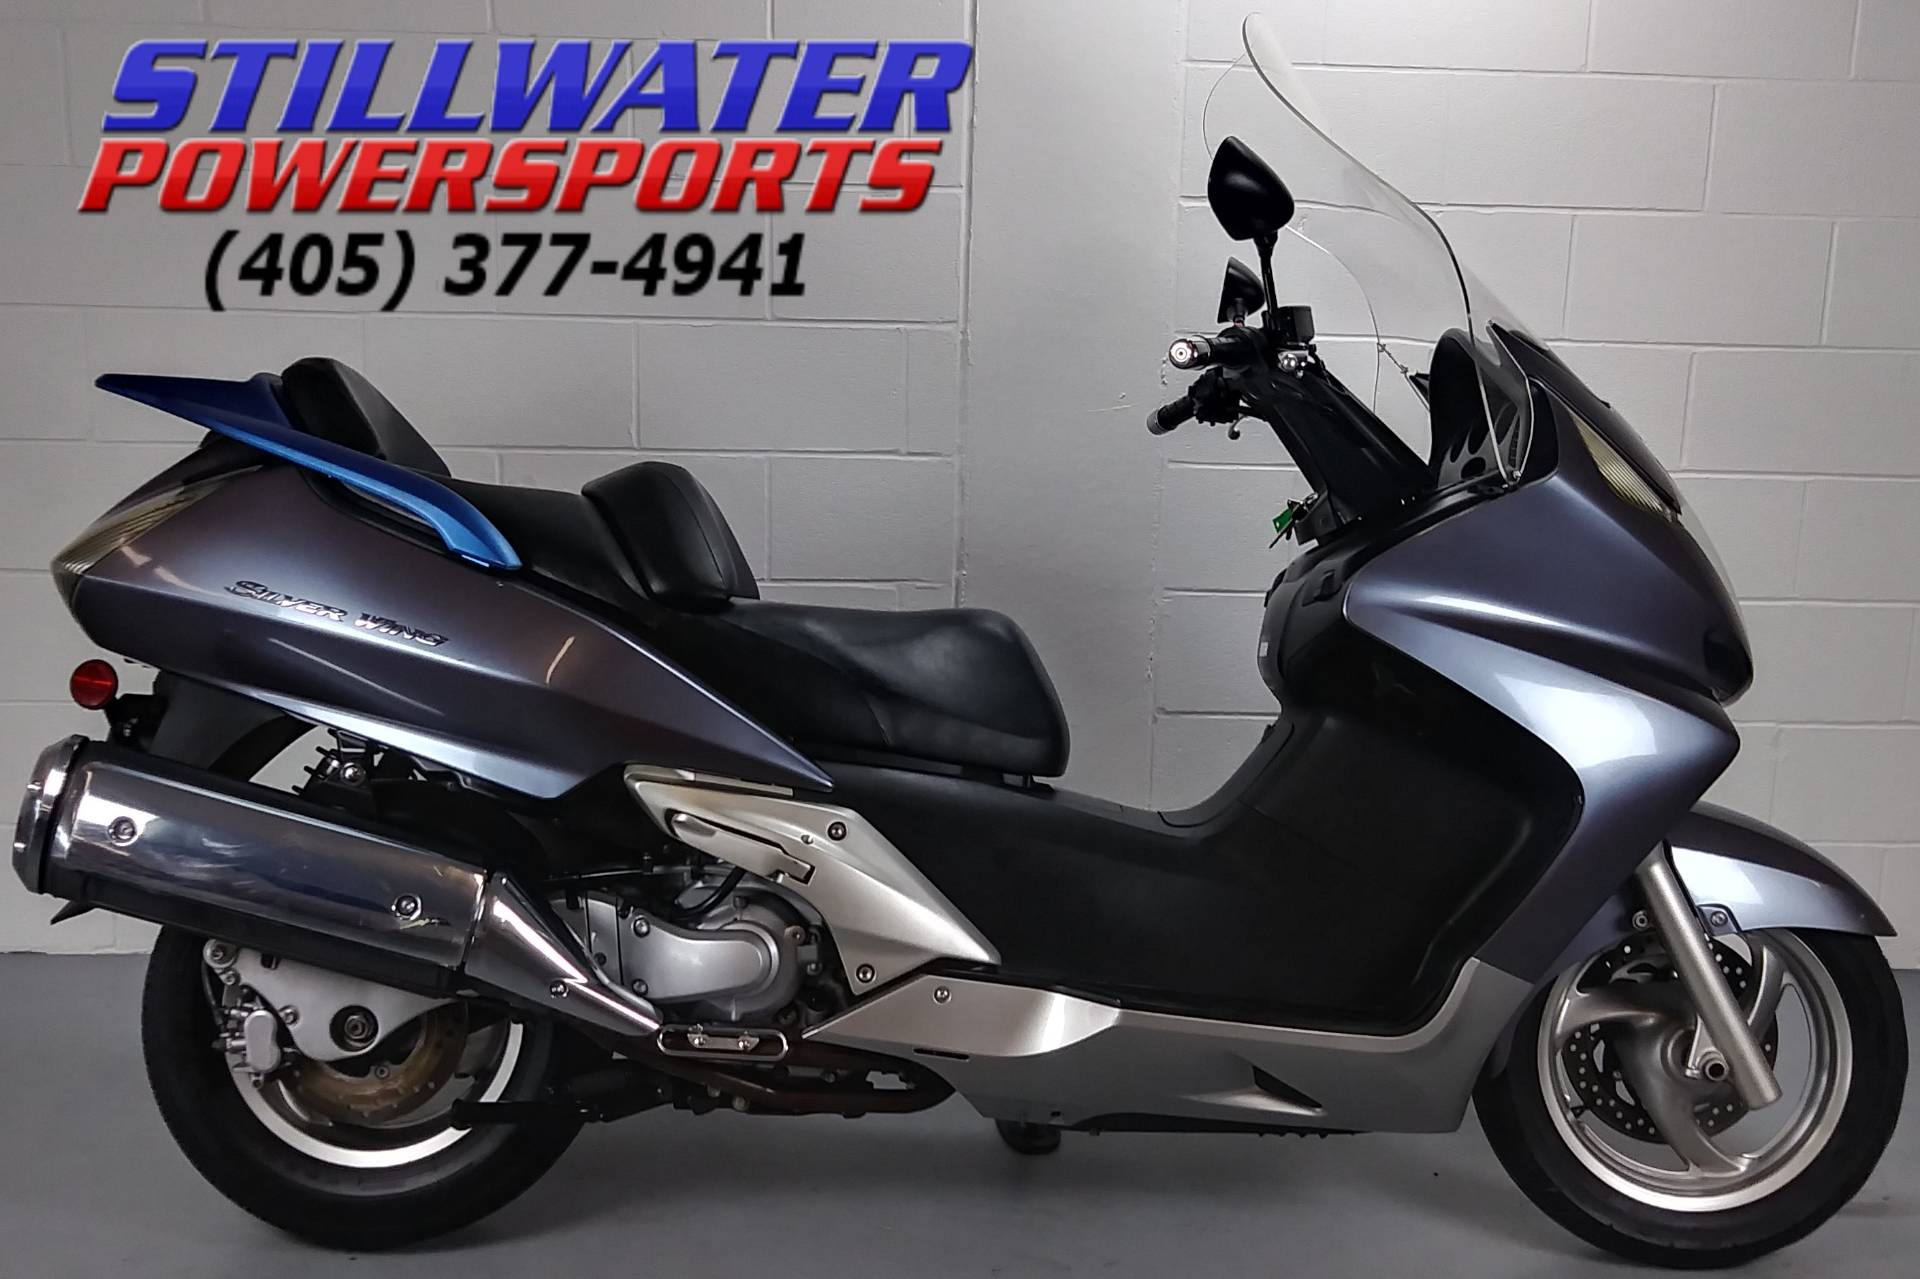 Used 2007 Honda Silver wing Scooters in Stillwater, OK   Stock ...